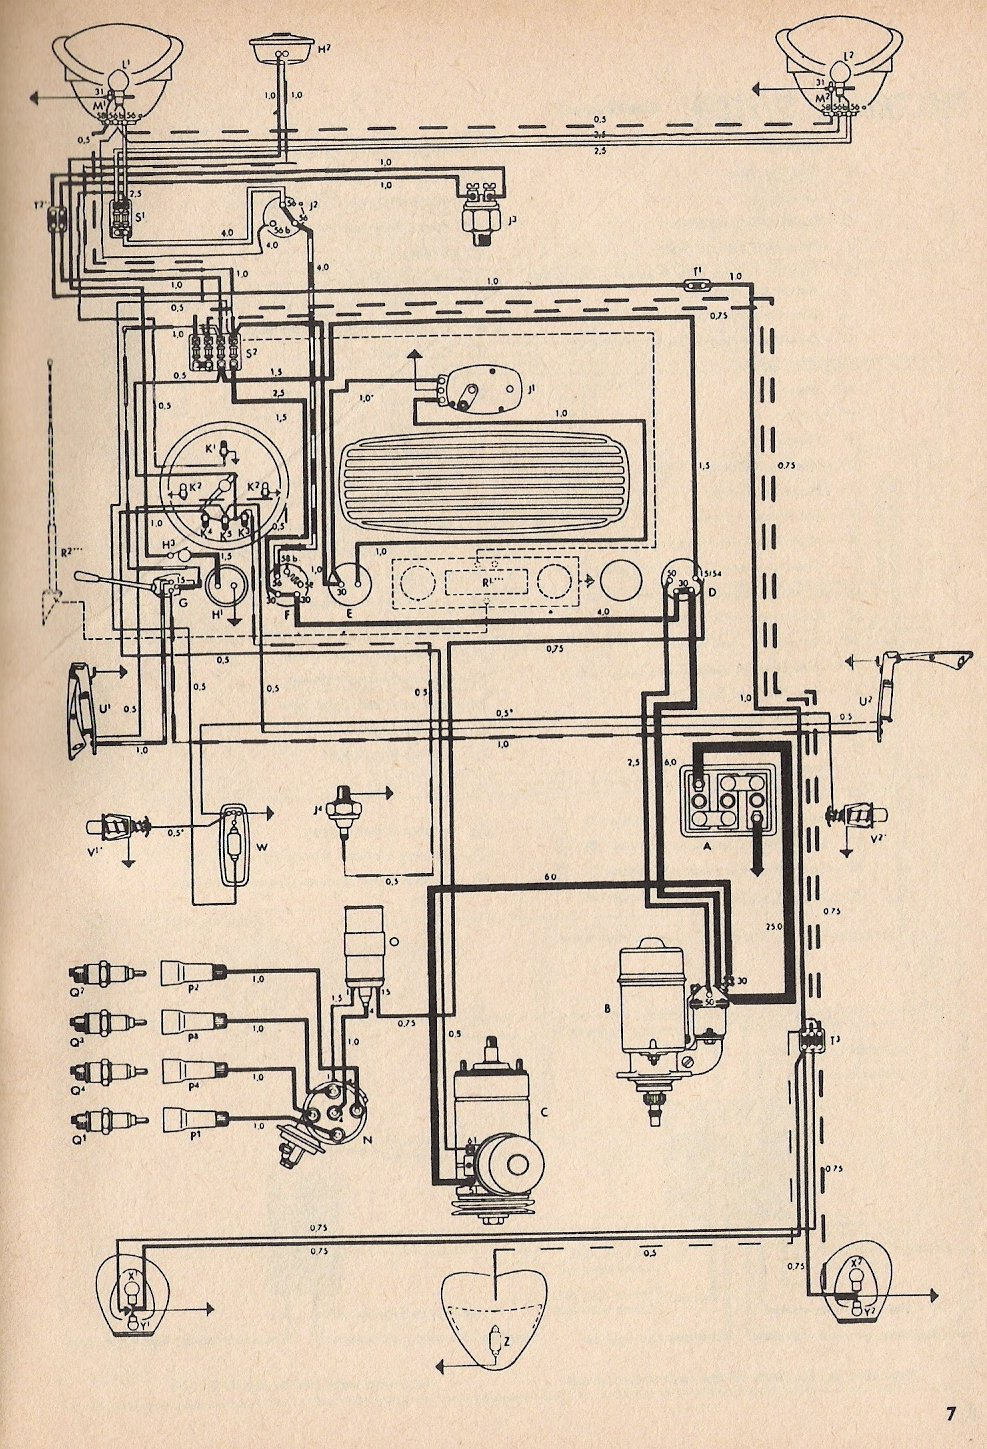 73 Vw Bug Fuse Box Wiring Another Blog About Diagram Beetle Free Picture Schematic Condenser